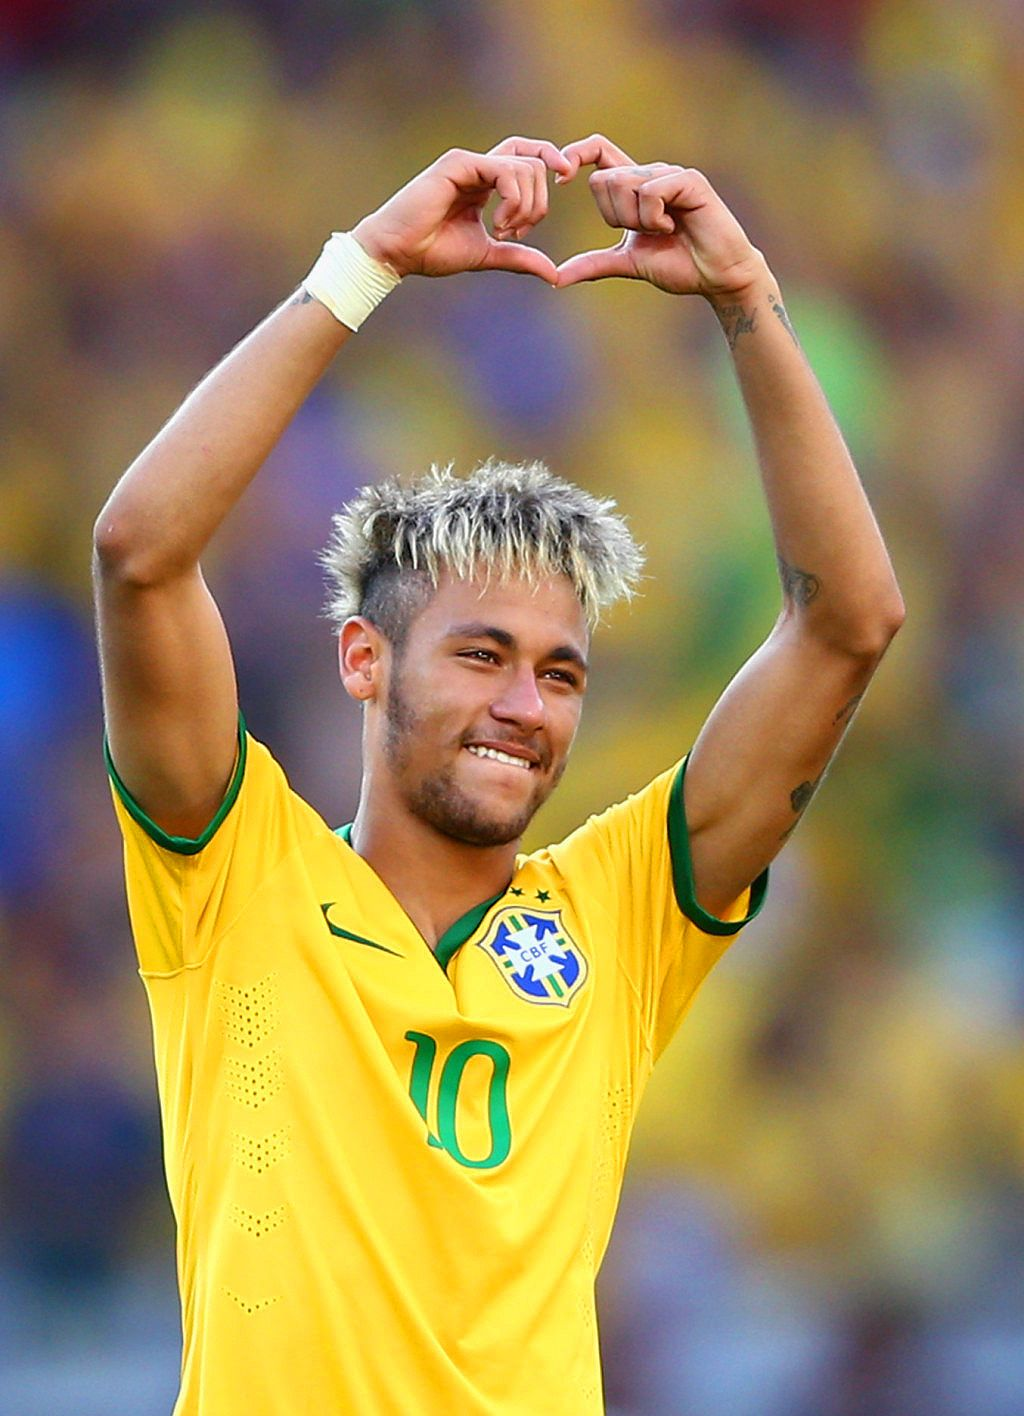 Brazil vs Chile - June 28, 2014 #wc2014 #worldcup # ...Neymar Playing Soccer 2014